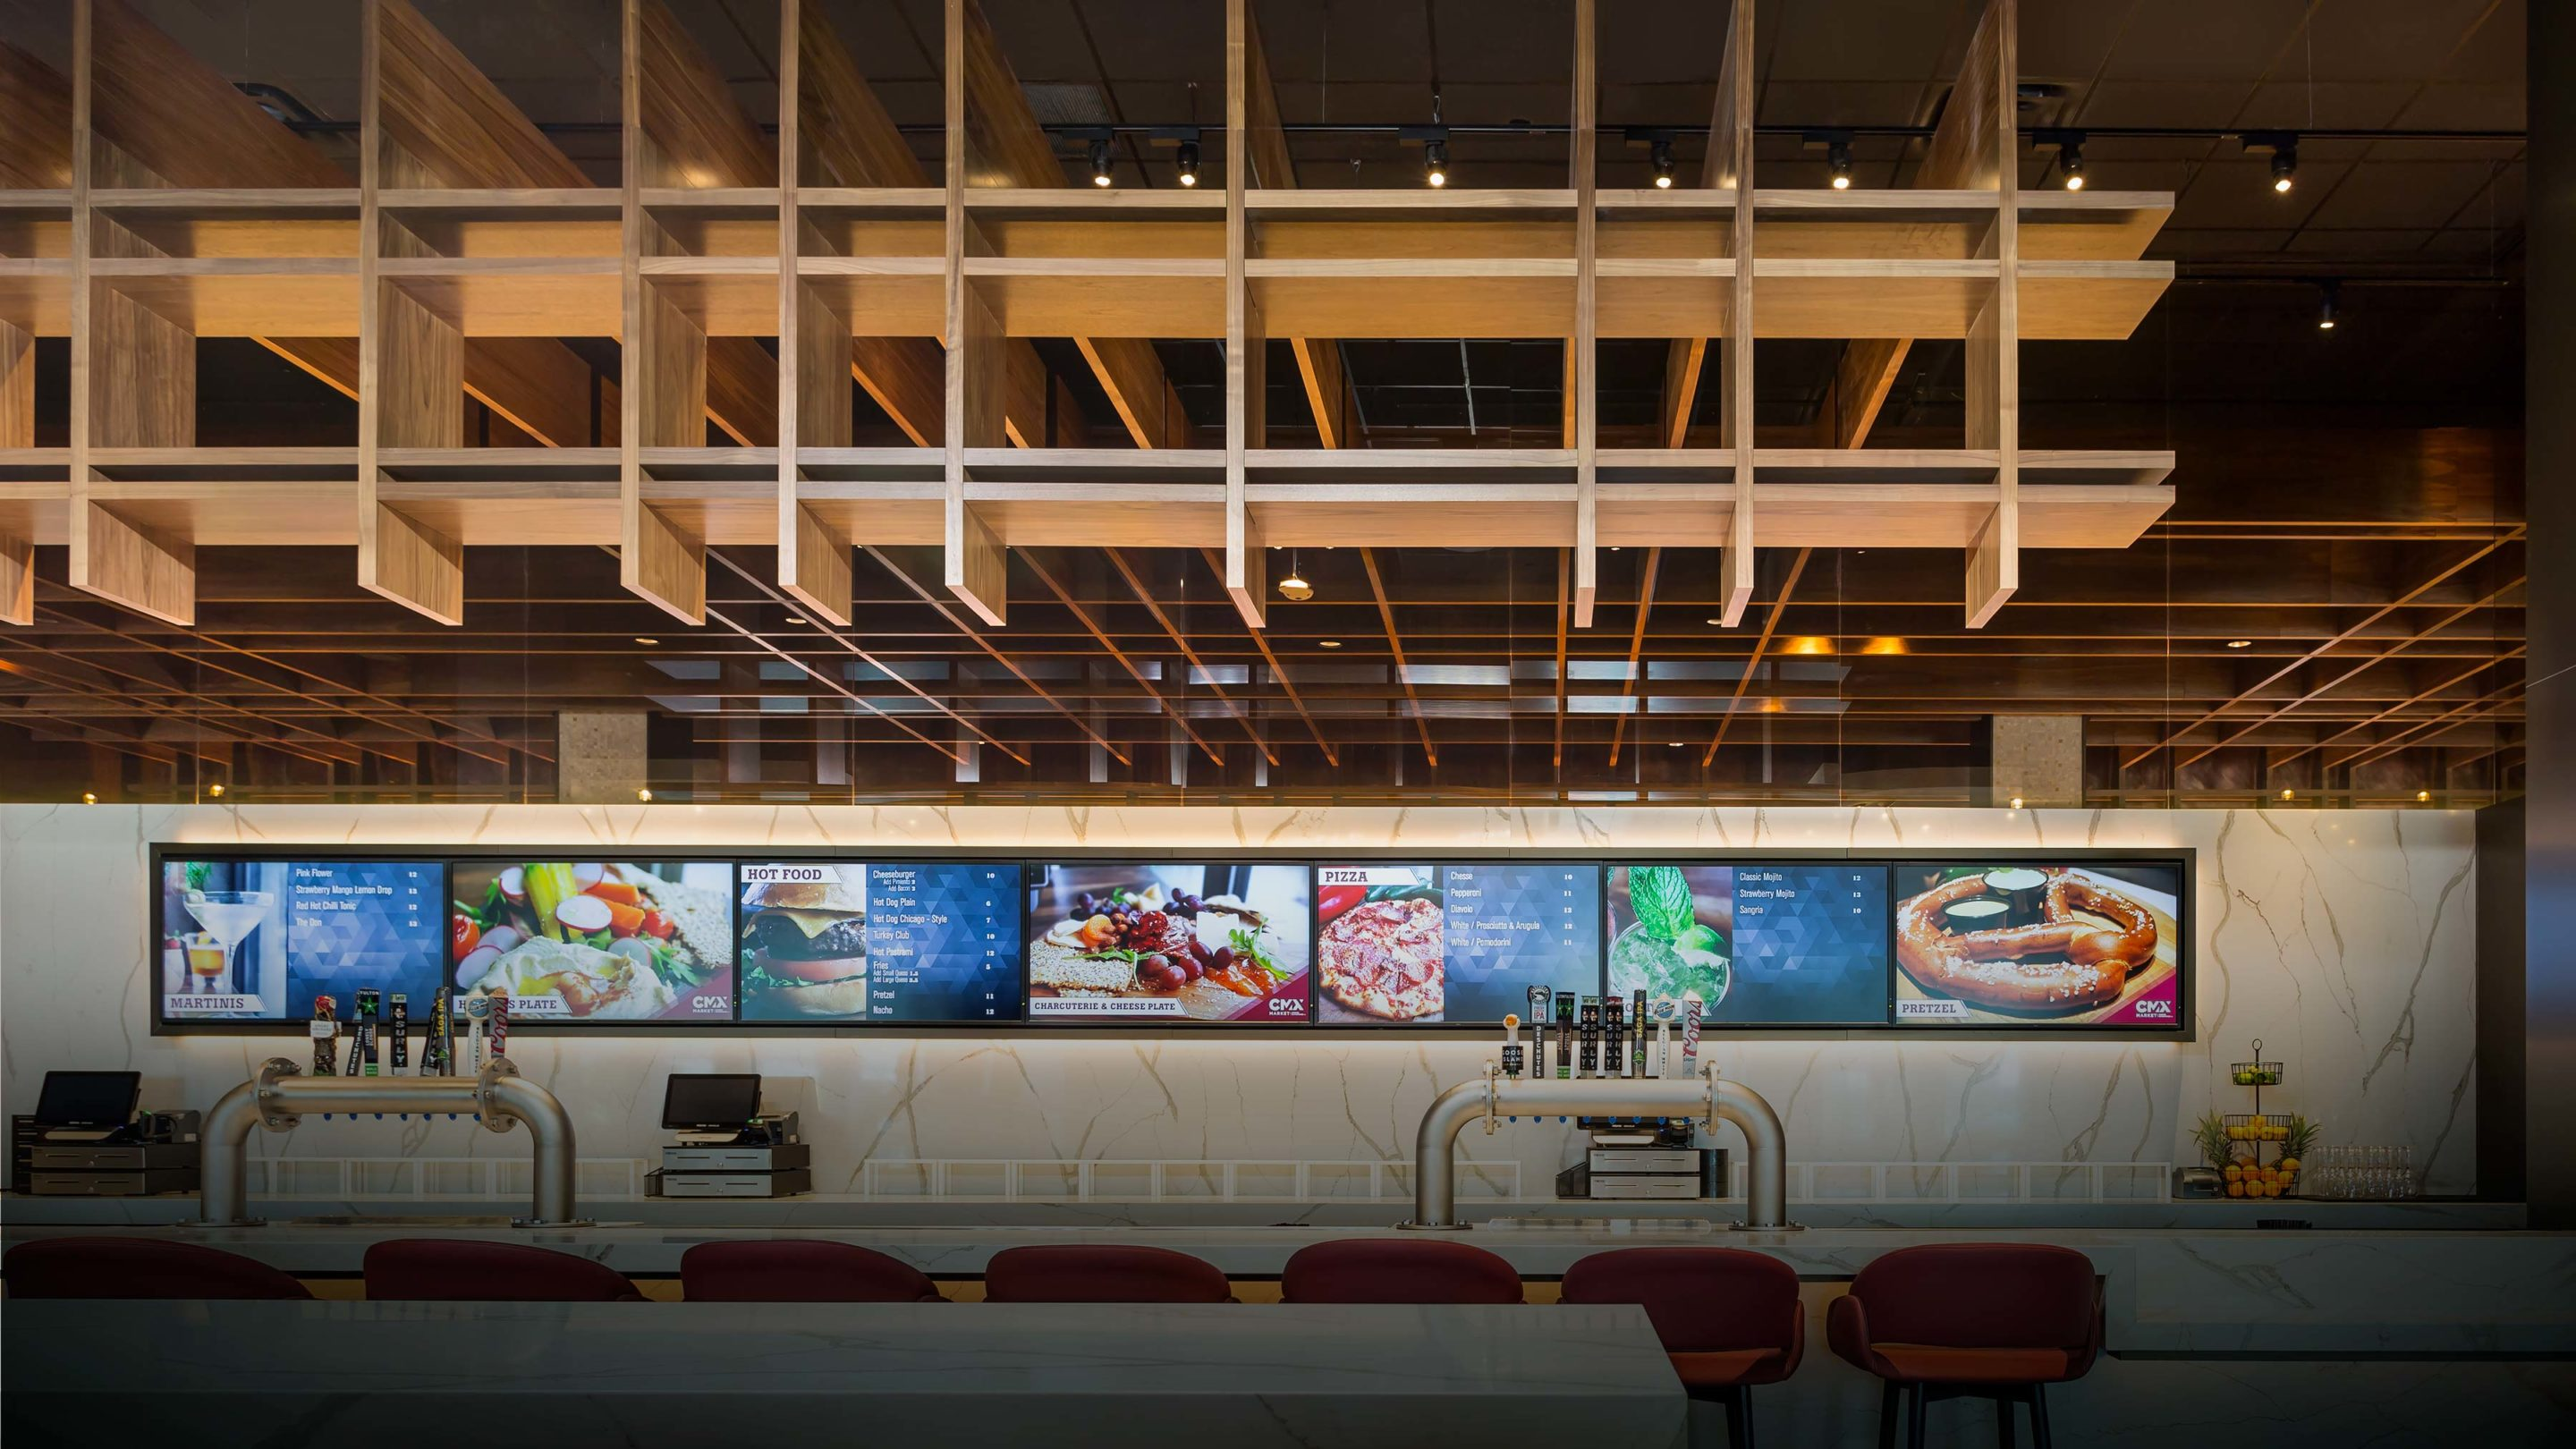 Wood acoustic baffles at CMX theater